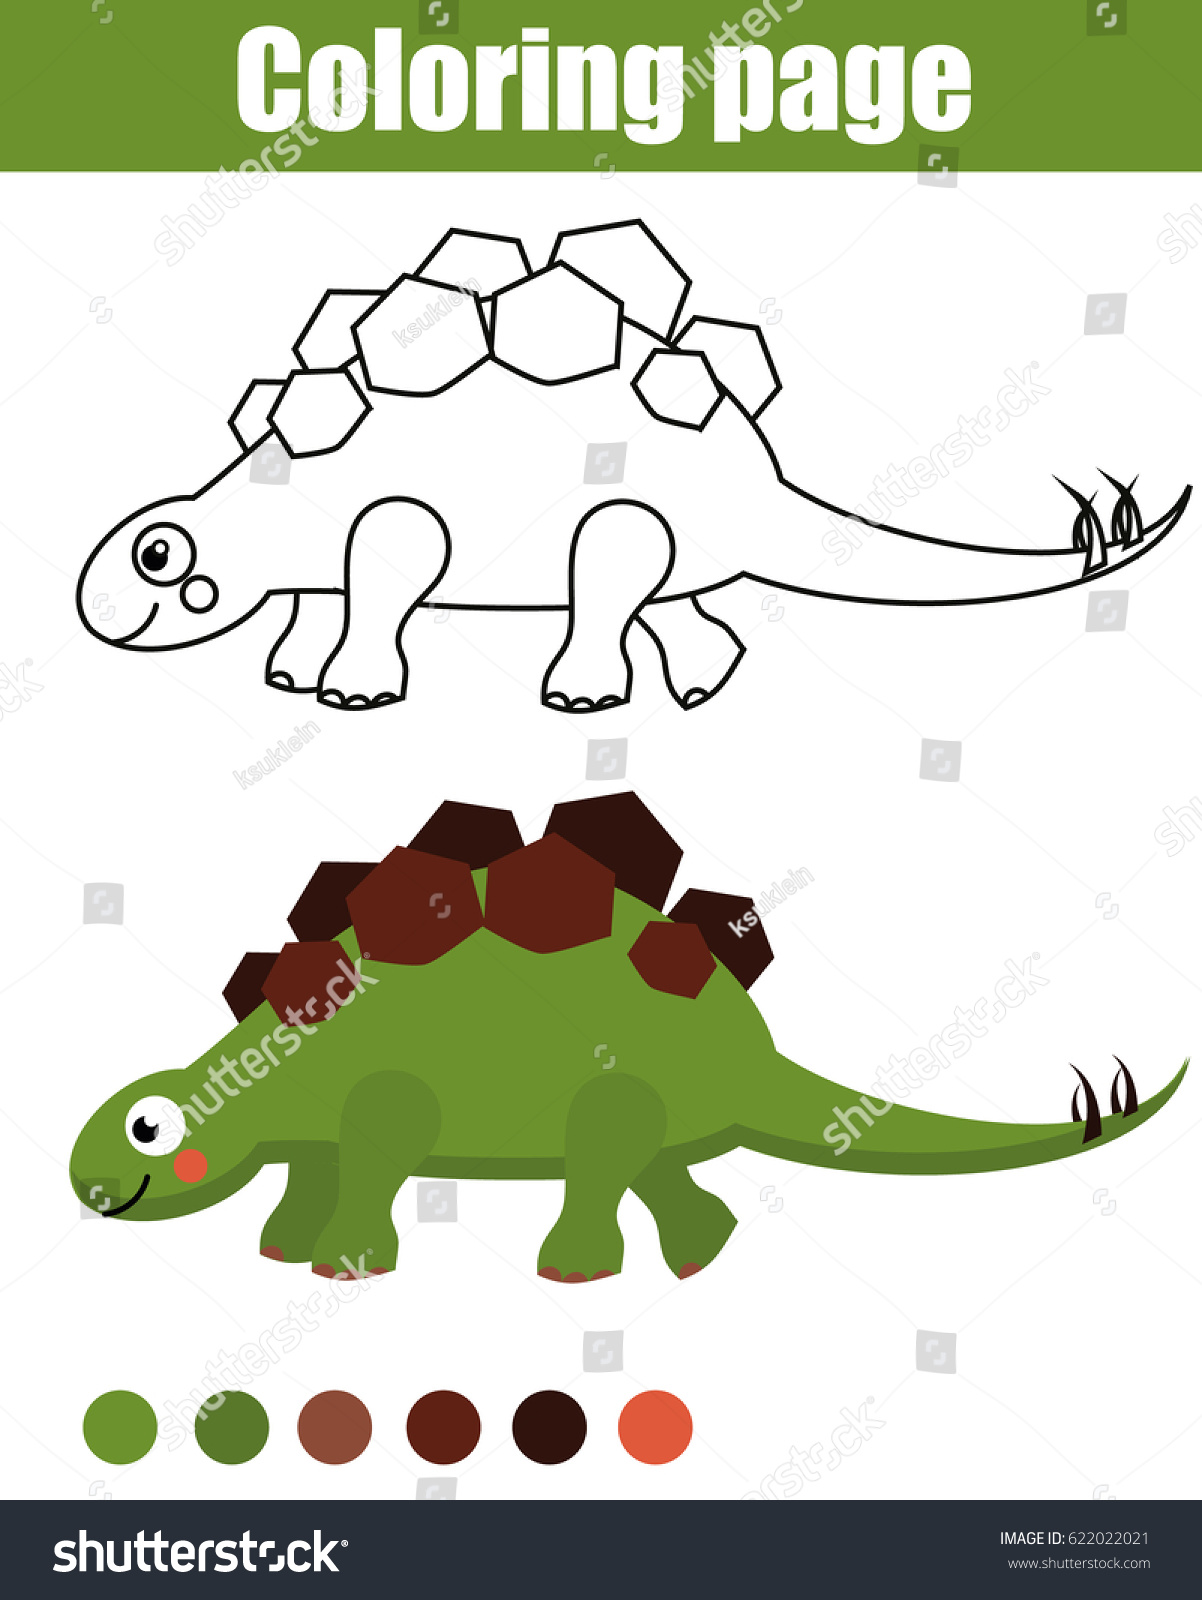 Coloring Page Cute Dinosaur Children Educational Stock Vector ...